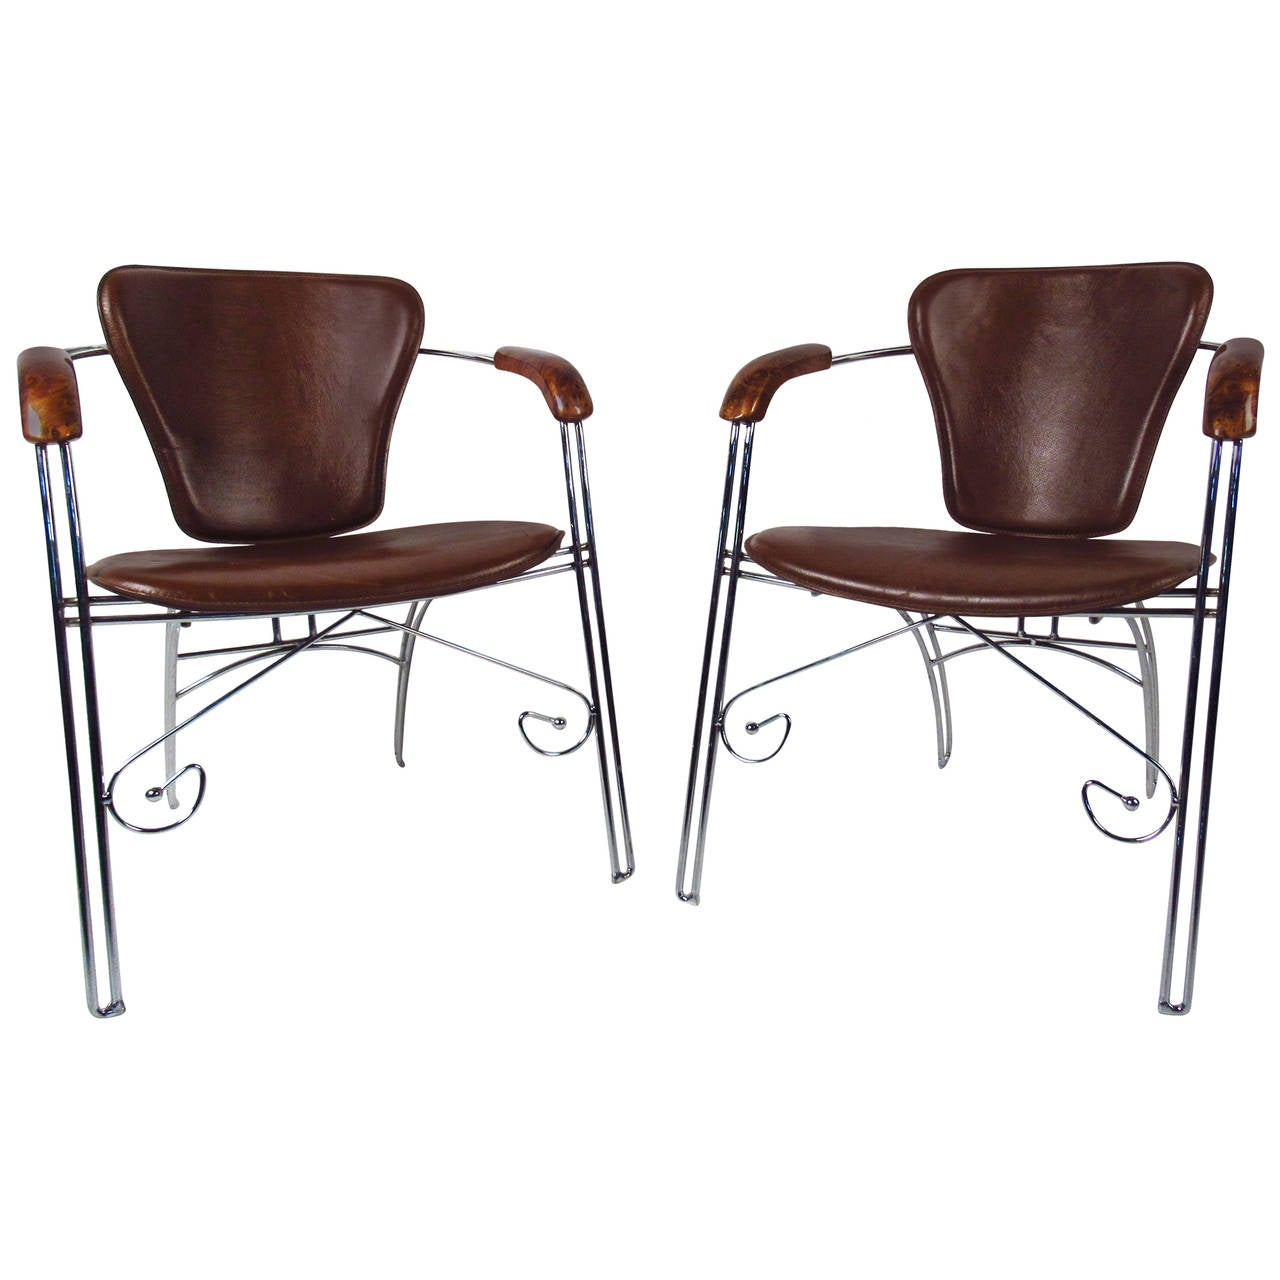 Vintage Modern Leather and Chrome Chairs For Sale  sc 1 st  1stDibs & Vintage Modern Leather and Chrome Chairs For Sale at 1stdibs